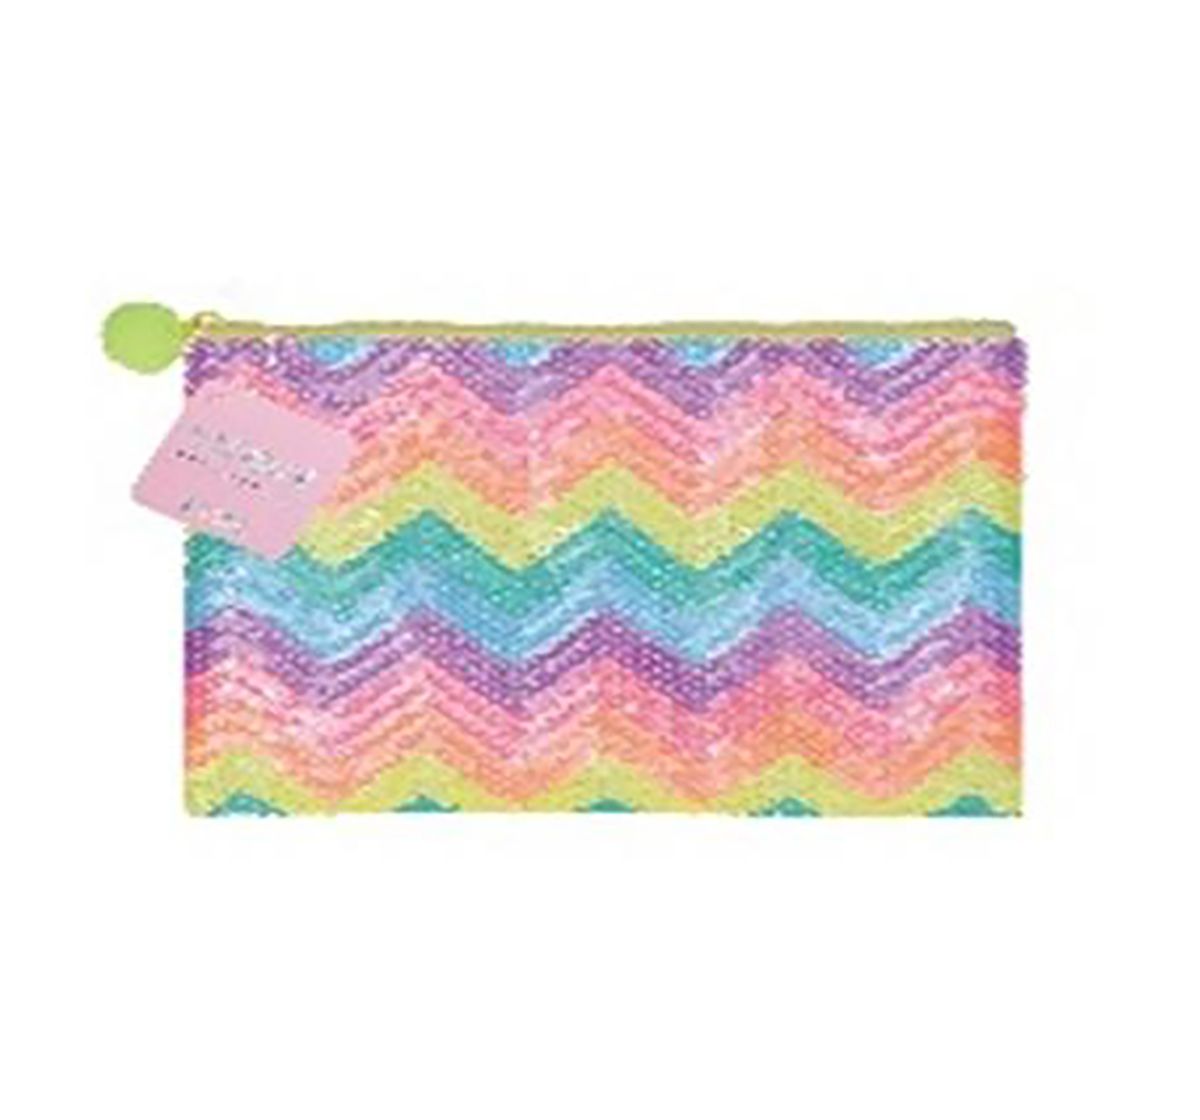 Syloon   Syloon Sequin Pencil Pouch Zig Zag Rainbow Pencil Pouches & Boxes for Kids age 6Y+